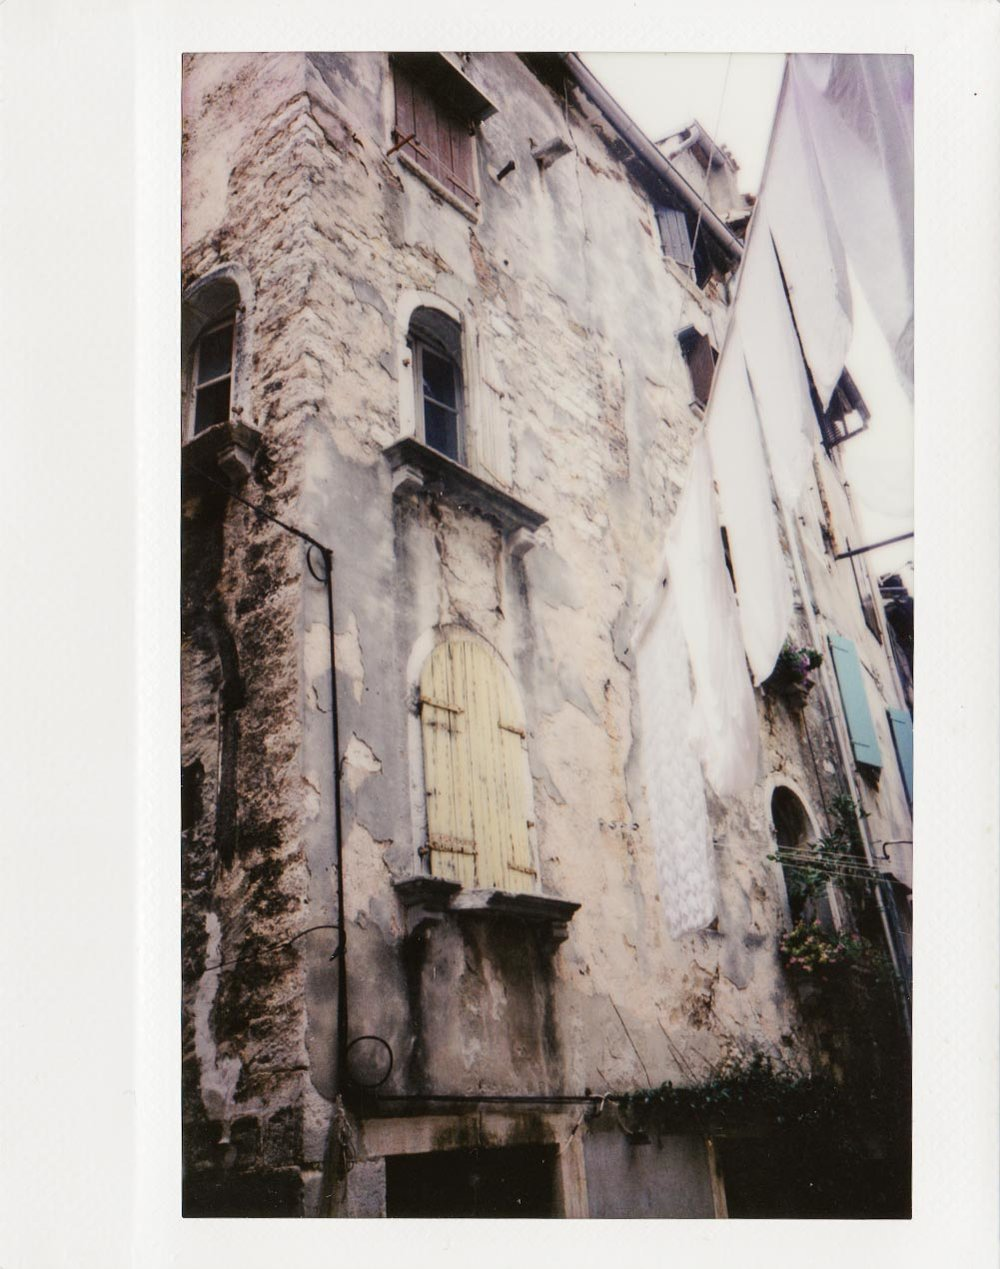 Rovinj, Croatia. When scenes have too many similar tones, the image tends to lack depth, definition and contrast.